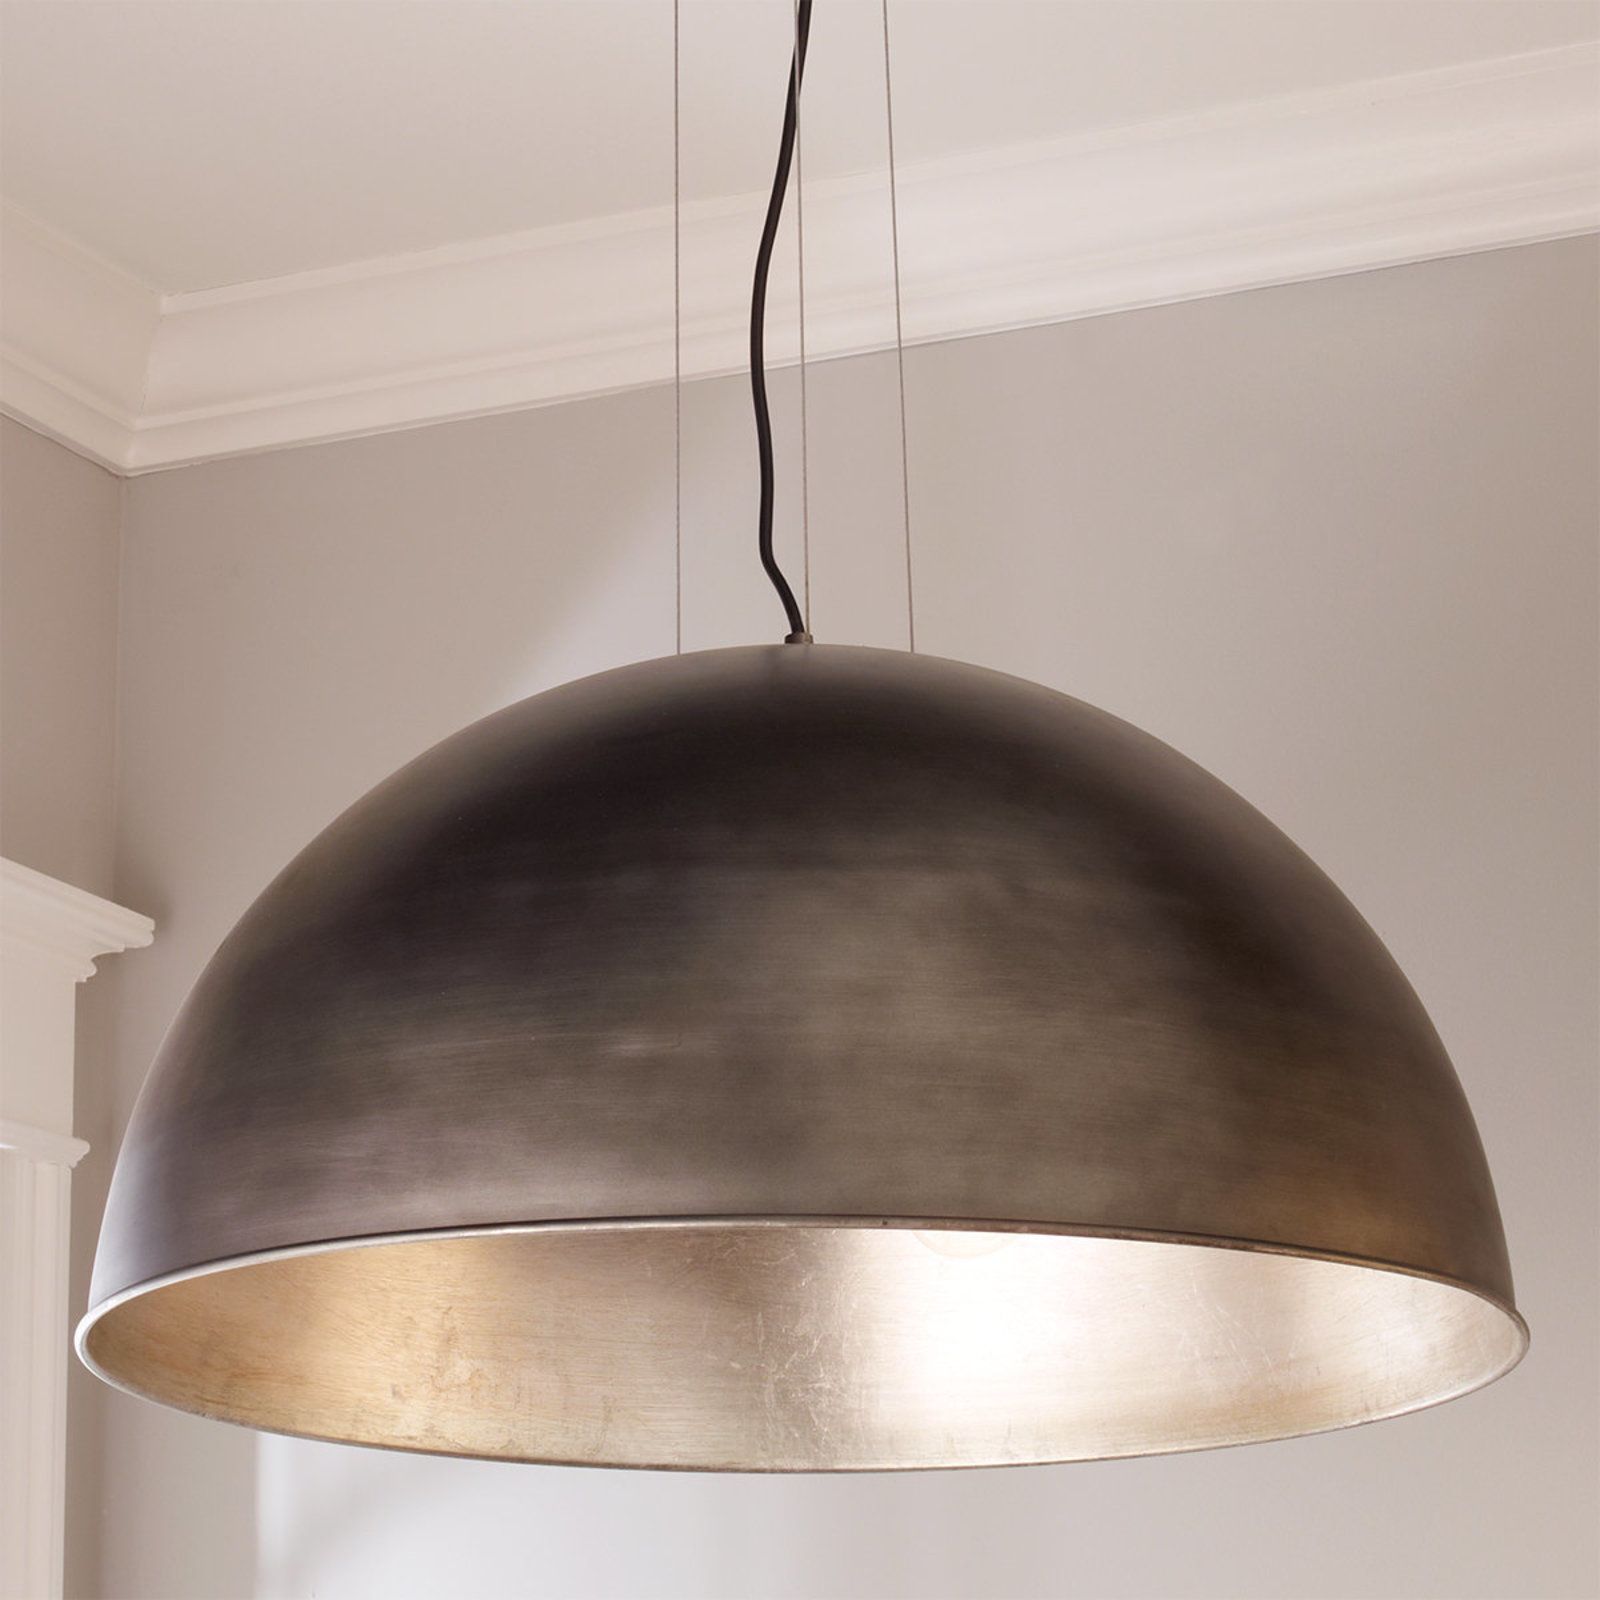 Industrial Dome Shade Pendant Large Dome Pendant Lighting Large Pendant Lighting Dome Light Fixture